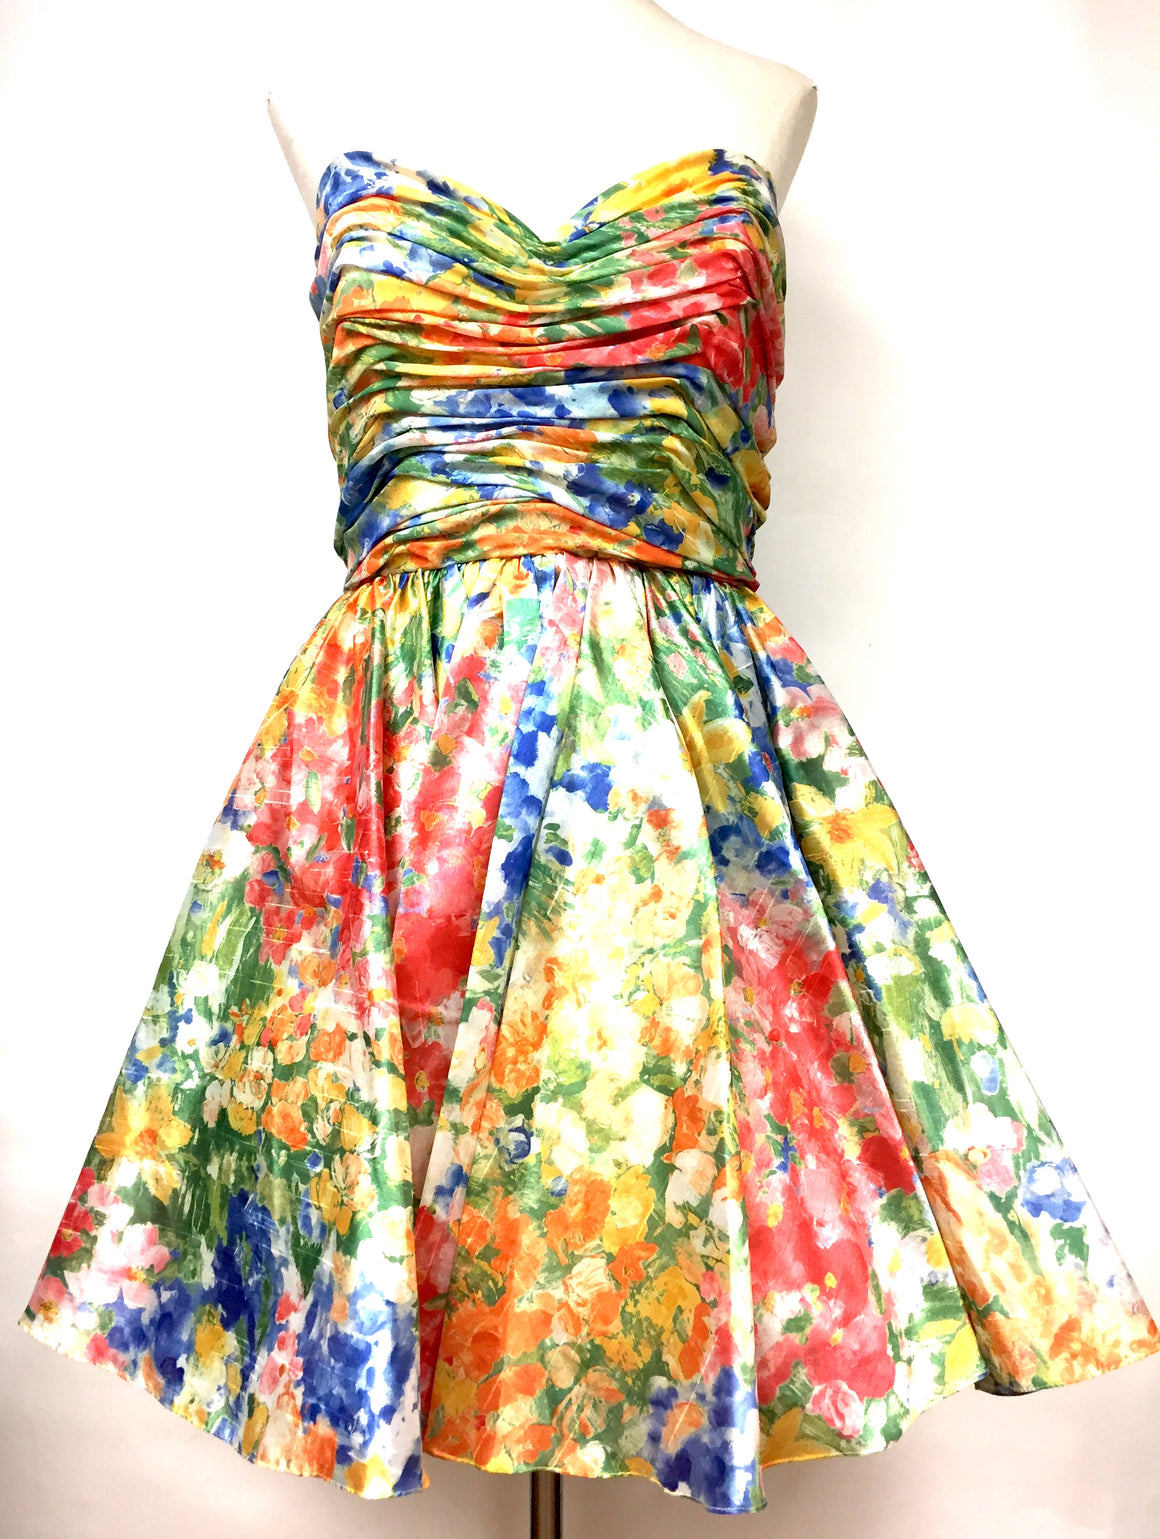 JENNY PACKHAM Multicolor Floral-Print Fit & Flare Strapless Dress Size: Small